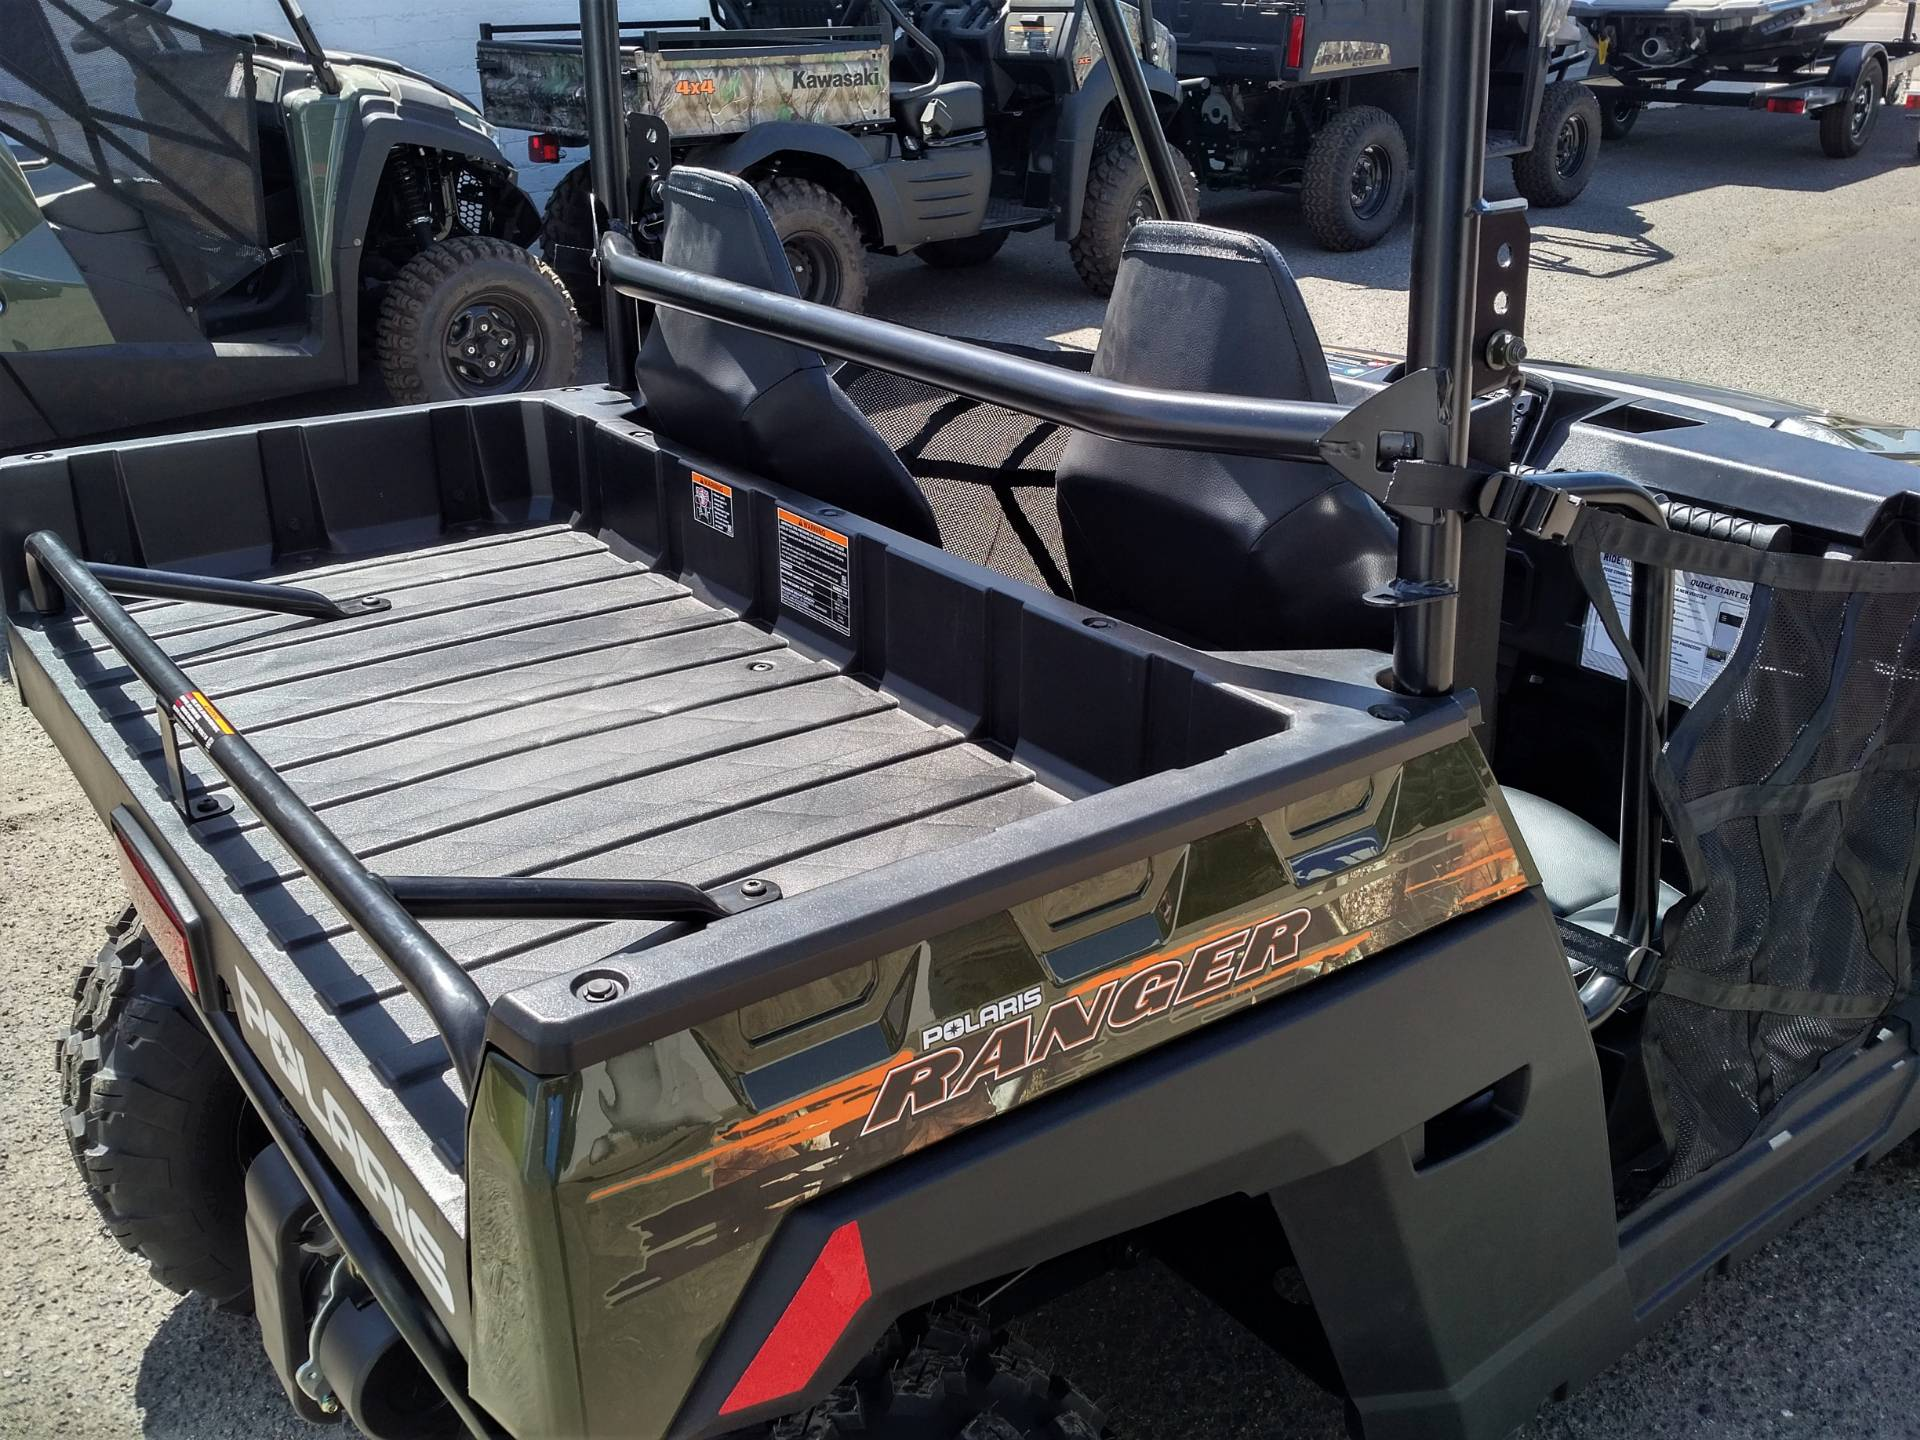 2019 Polaris Ranger 150 EFI in Salinas, California - Photo 11